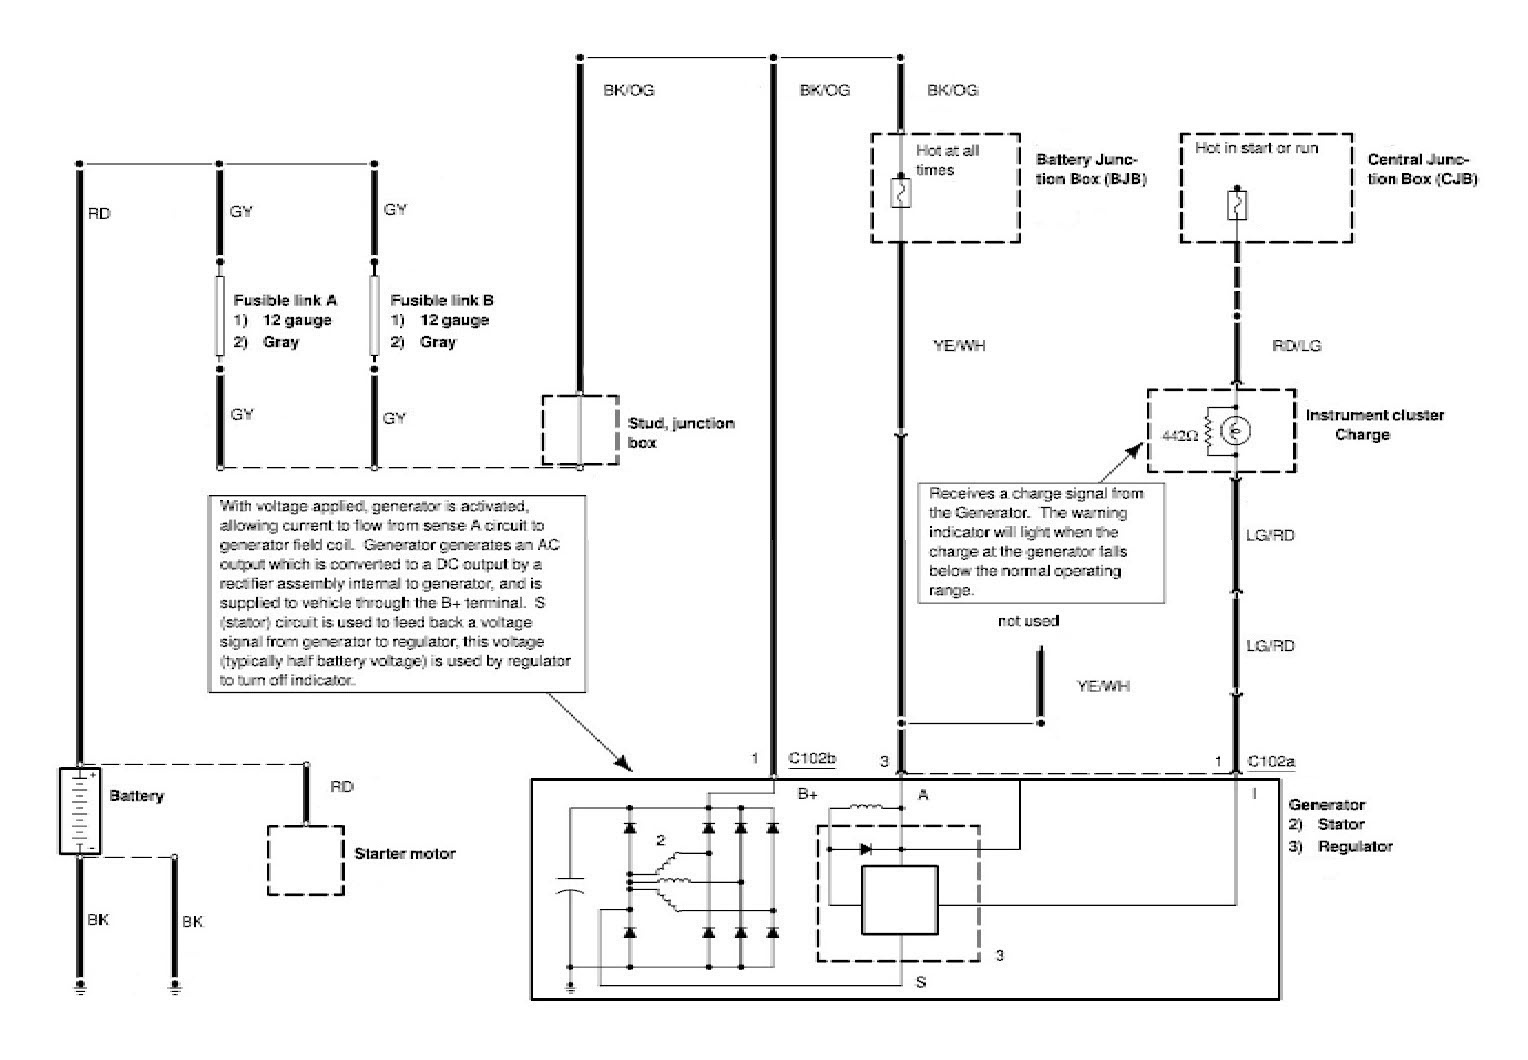 [DIAGRAM] 2003 Mercury Grand Marquis Stereo Wiring Diagram